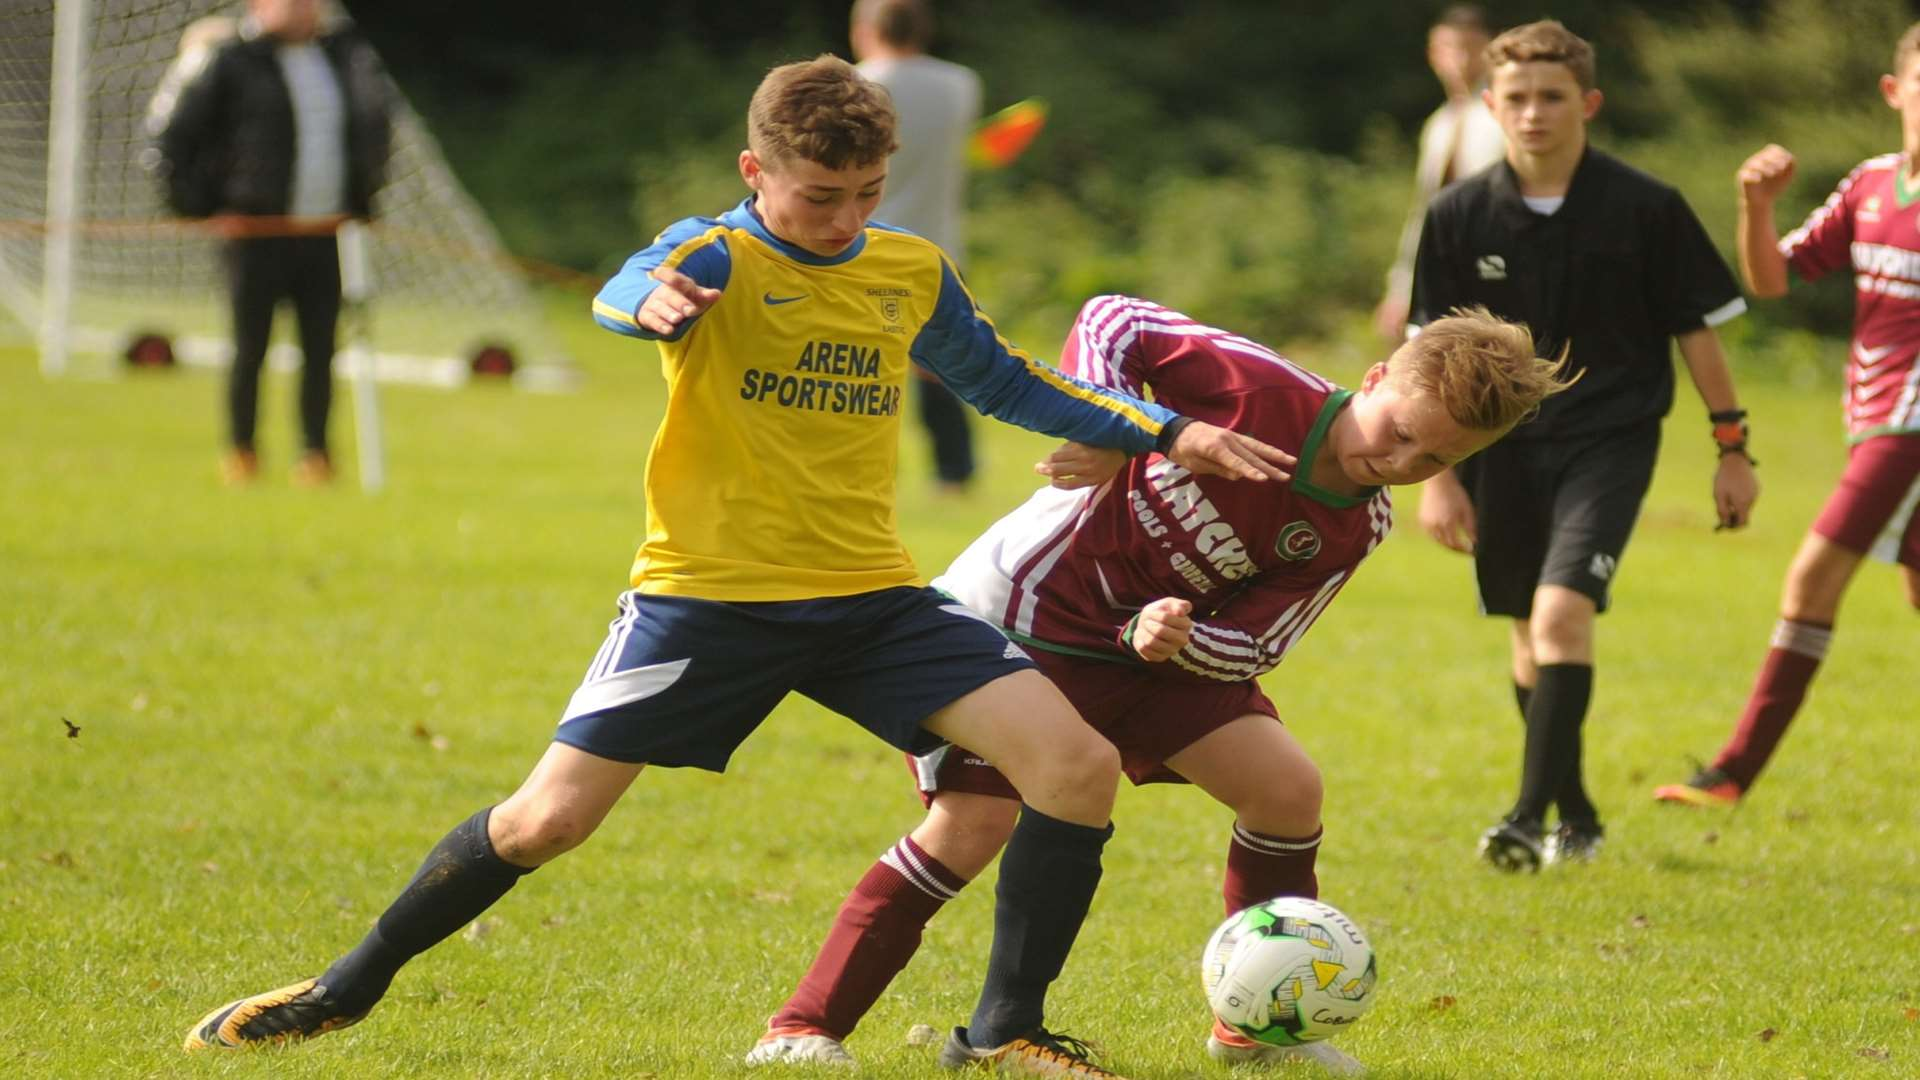 Sheerness East under-14s (yellow) take on Cobham Colts in the League Cup Picture: Steve Crispe